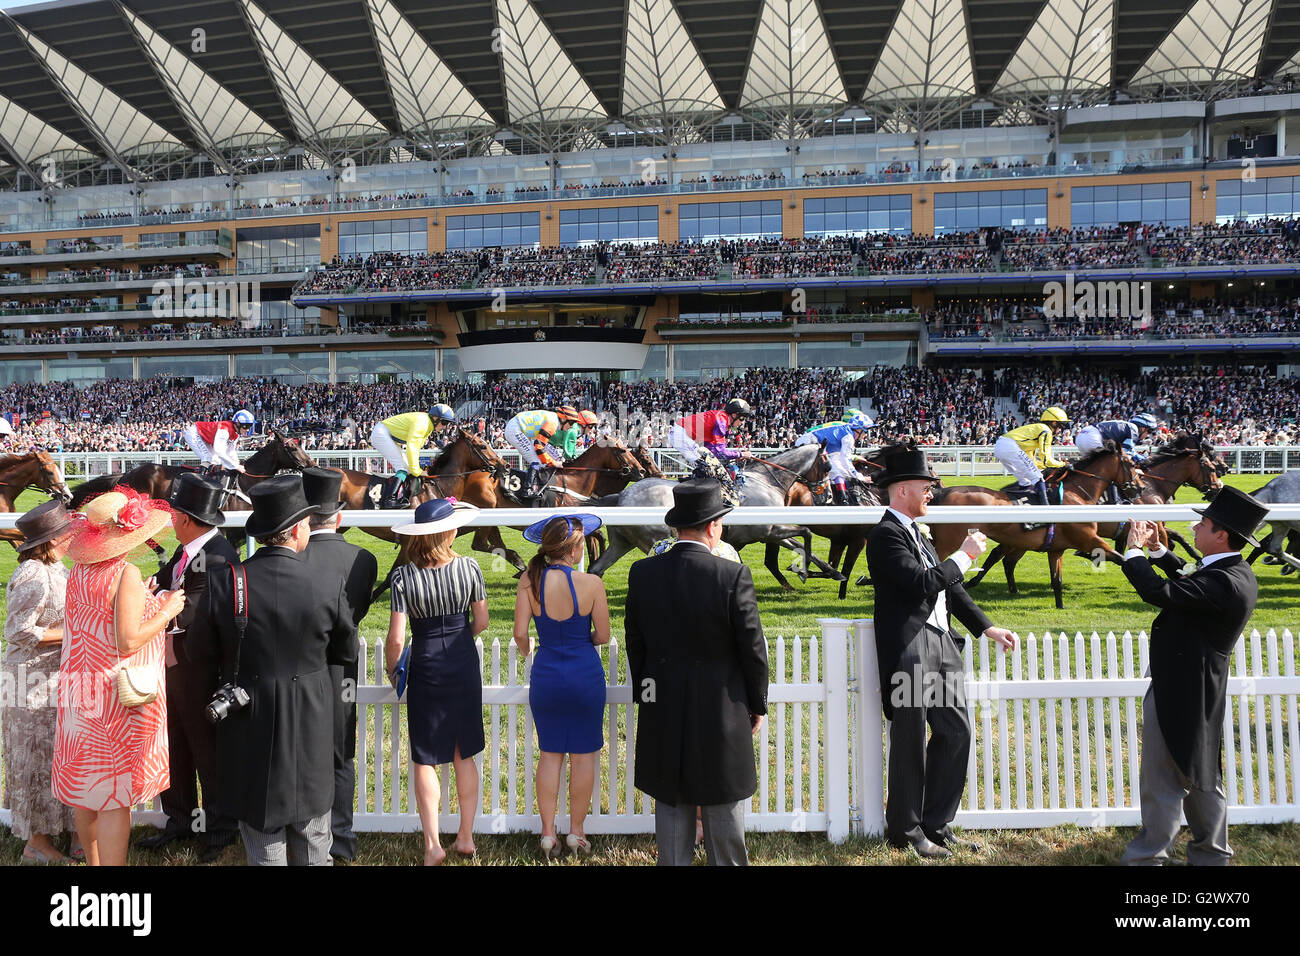 16.06.2015, Ascot , Berkshire, Grossbritannien - Smartly dressed people at the races. 00S150616D701CAROEX.JPG - Stock Photo